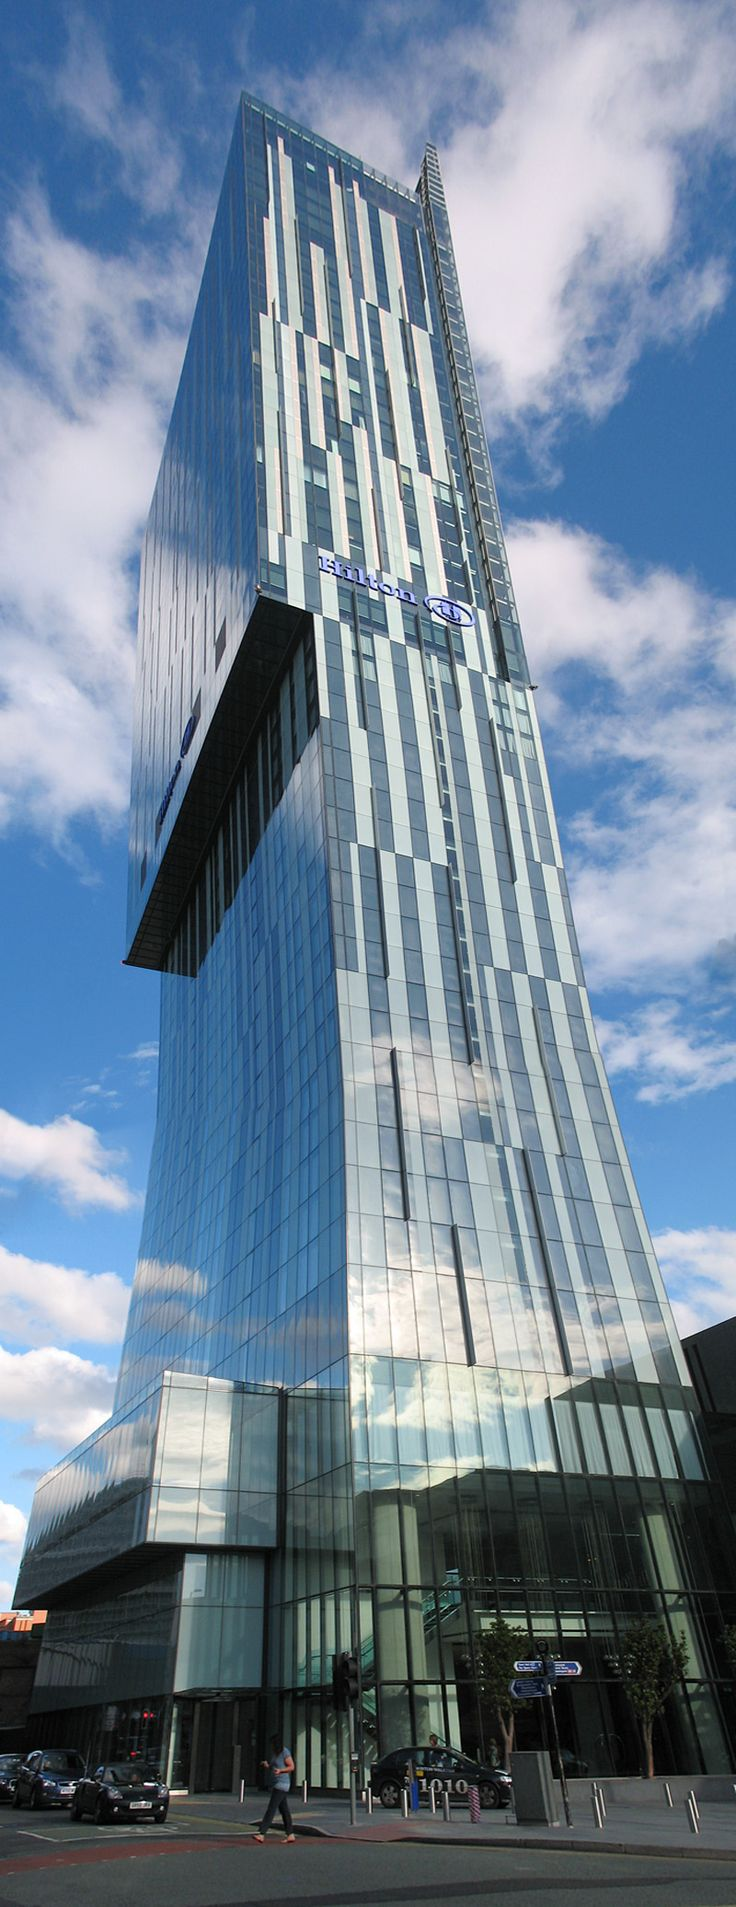 The Beetham Tower (Hilton Hotel) Manchester, England. The tallest building in…